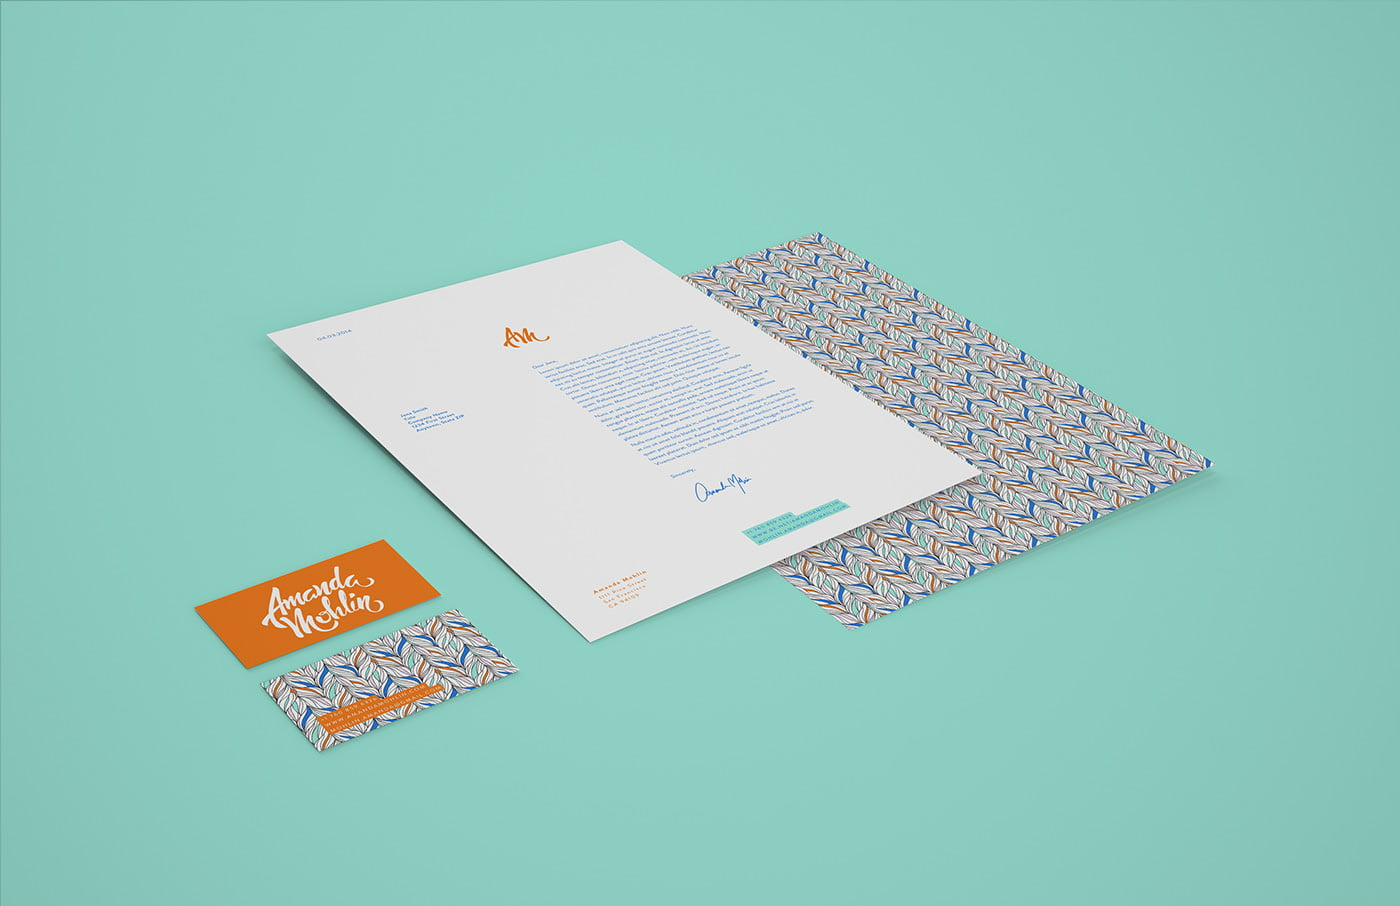 Personal-Branding-1 - 53+ FREE Typographic Business Cards IDEA [year]